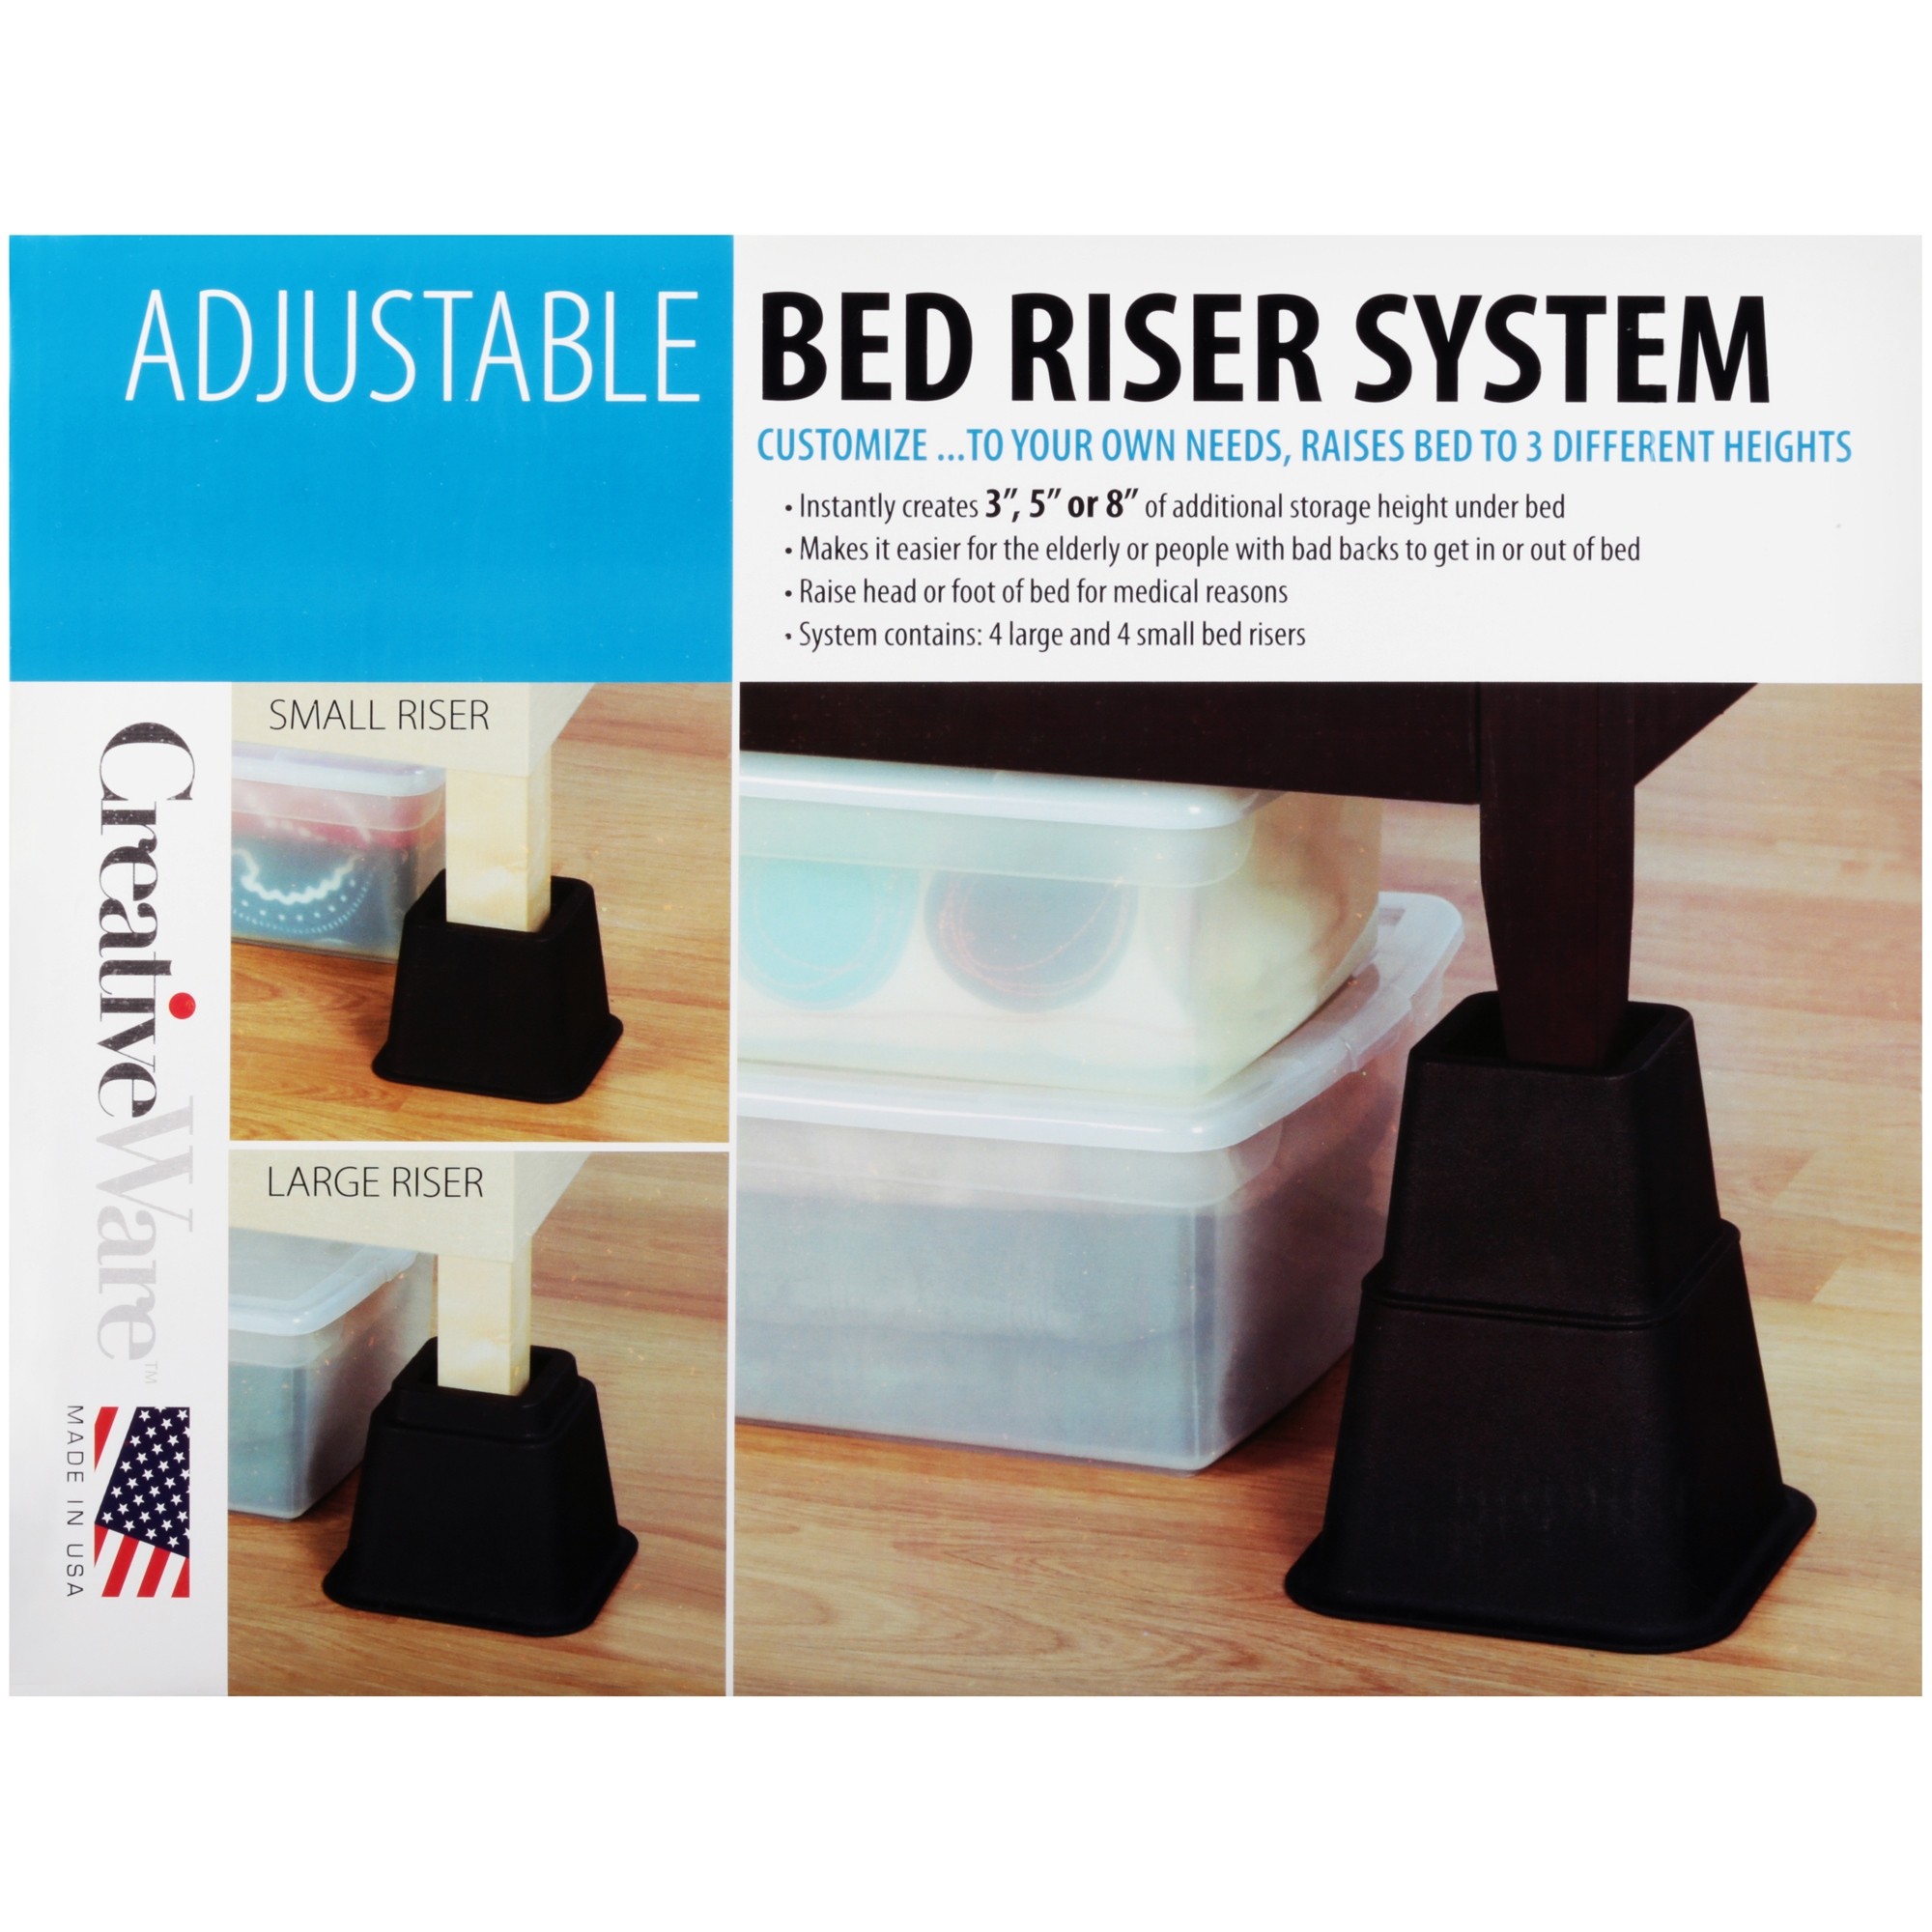 CreativeWare™ Adjustable Bed Riser System - Walmart.com